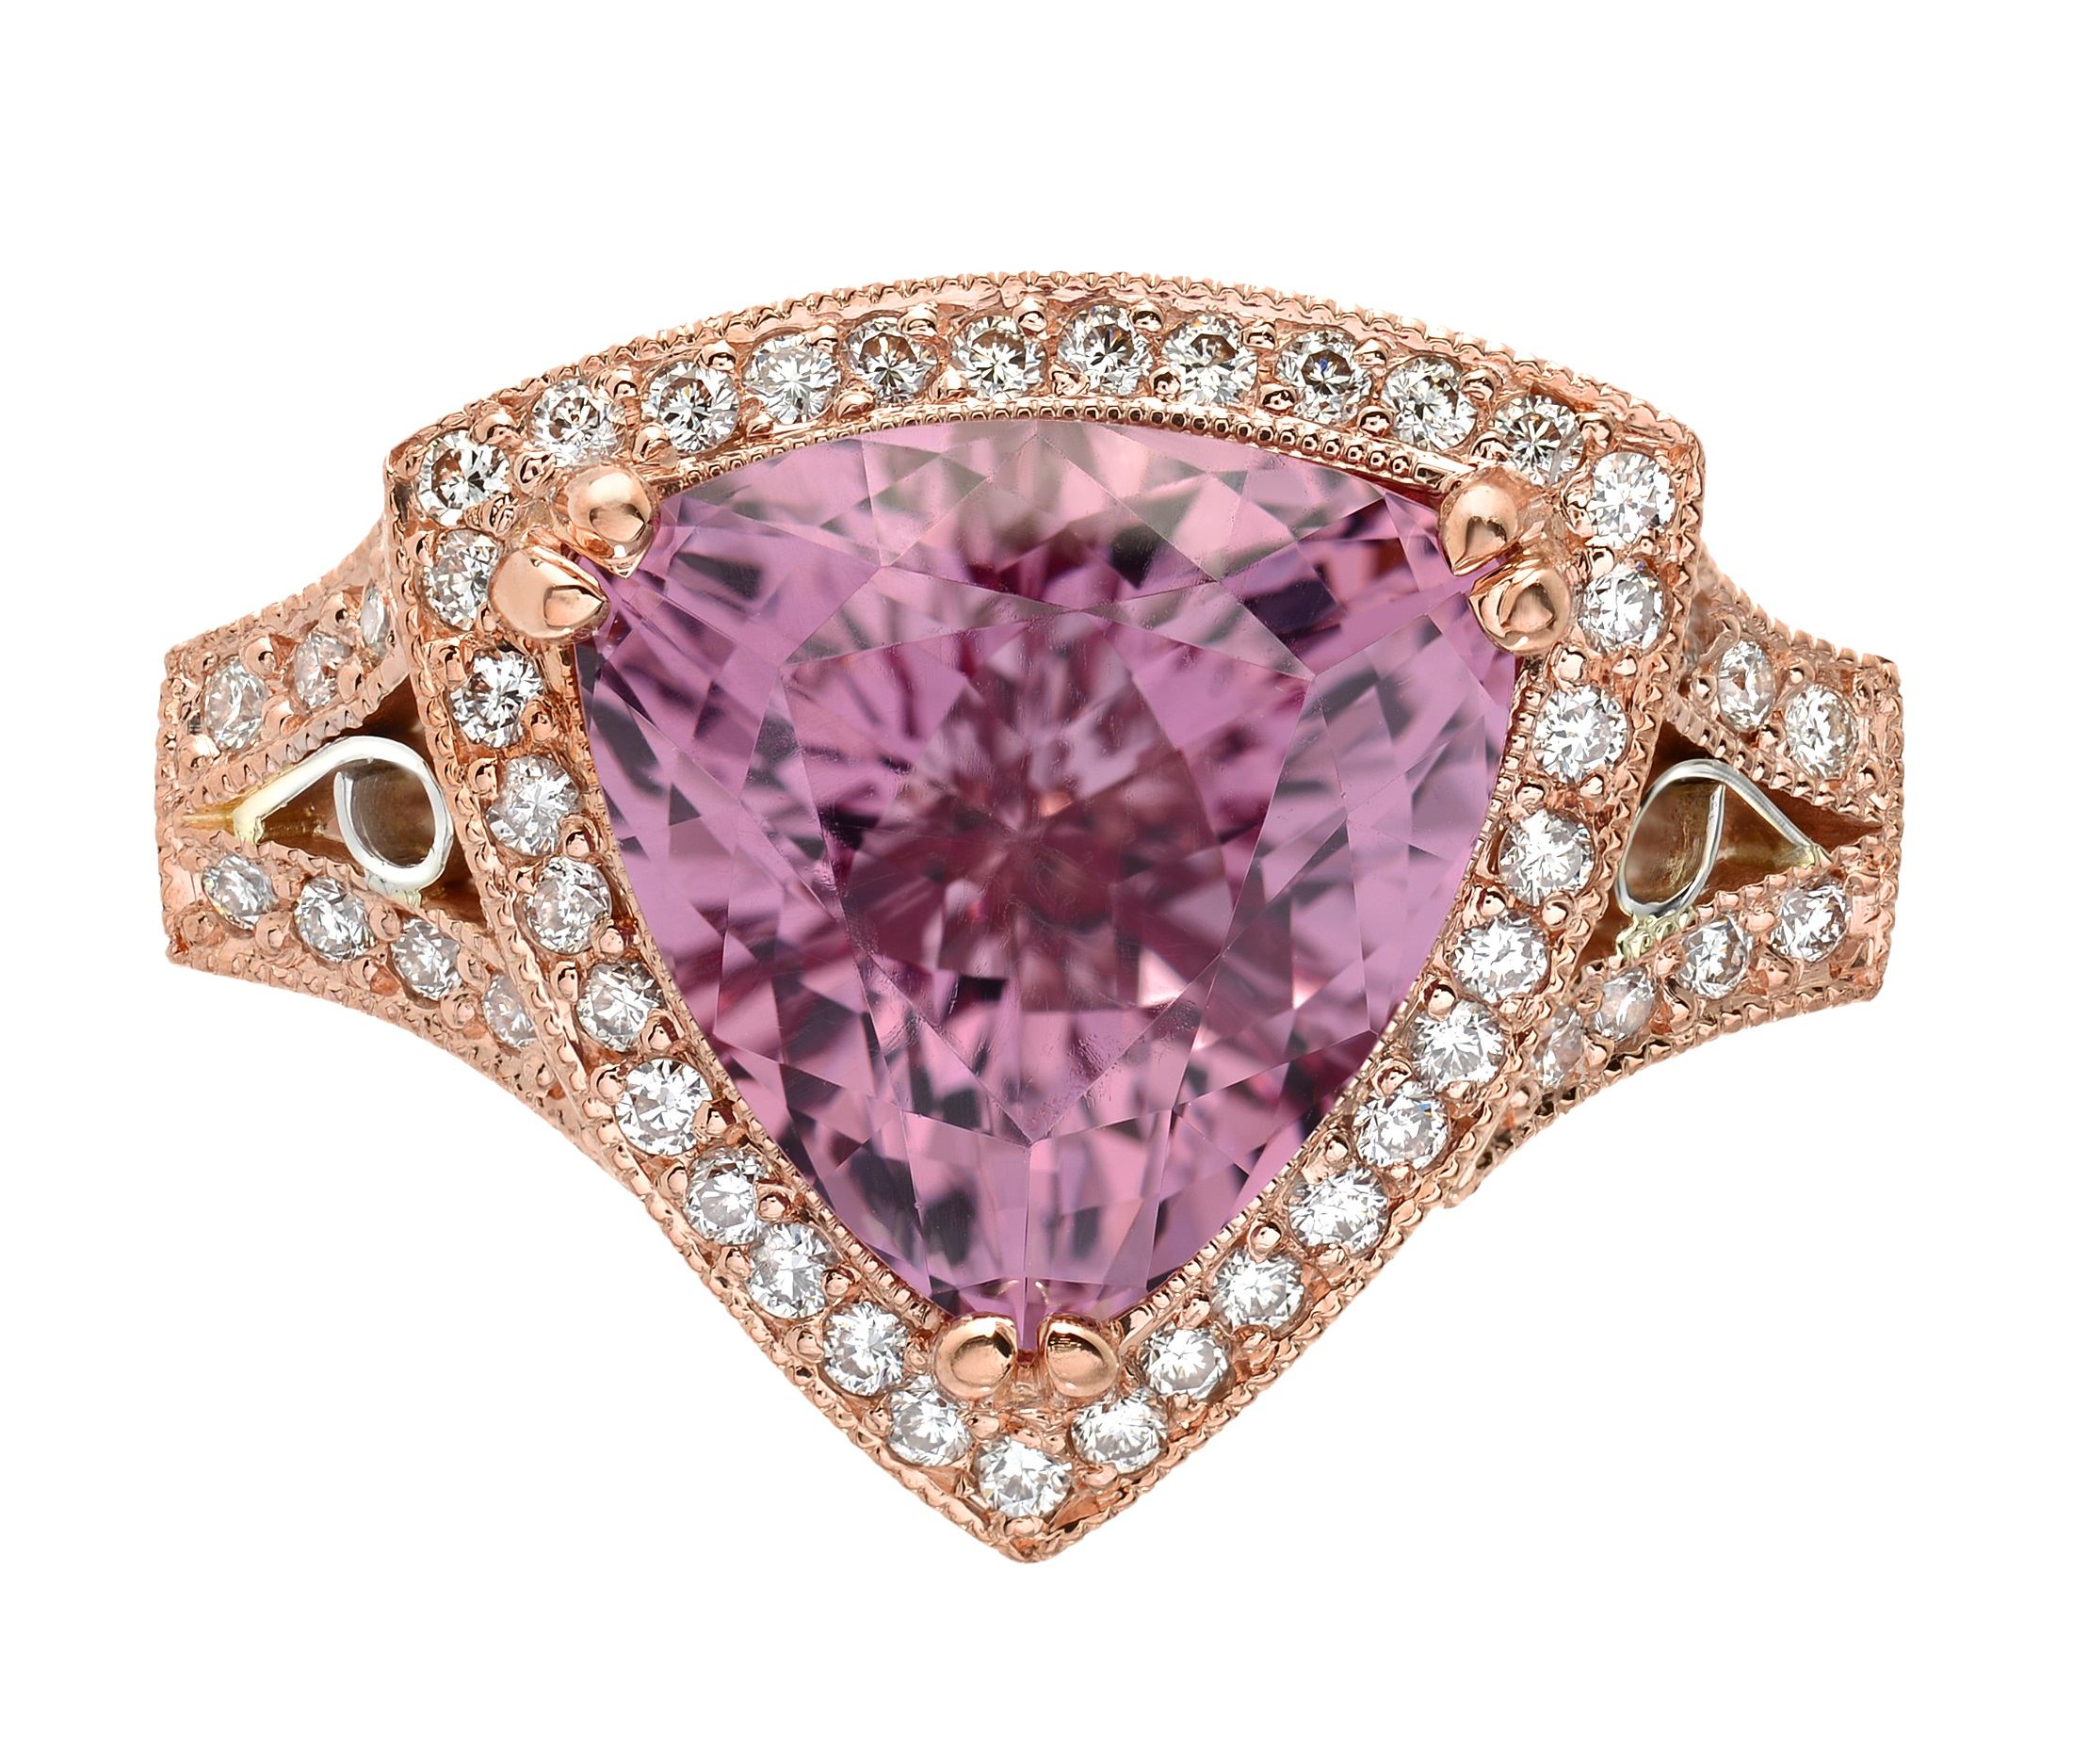 mahenge ring products diamond image gemstones showcase garnet